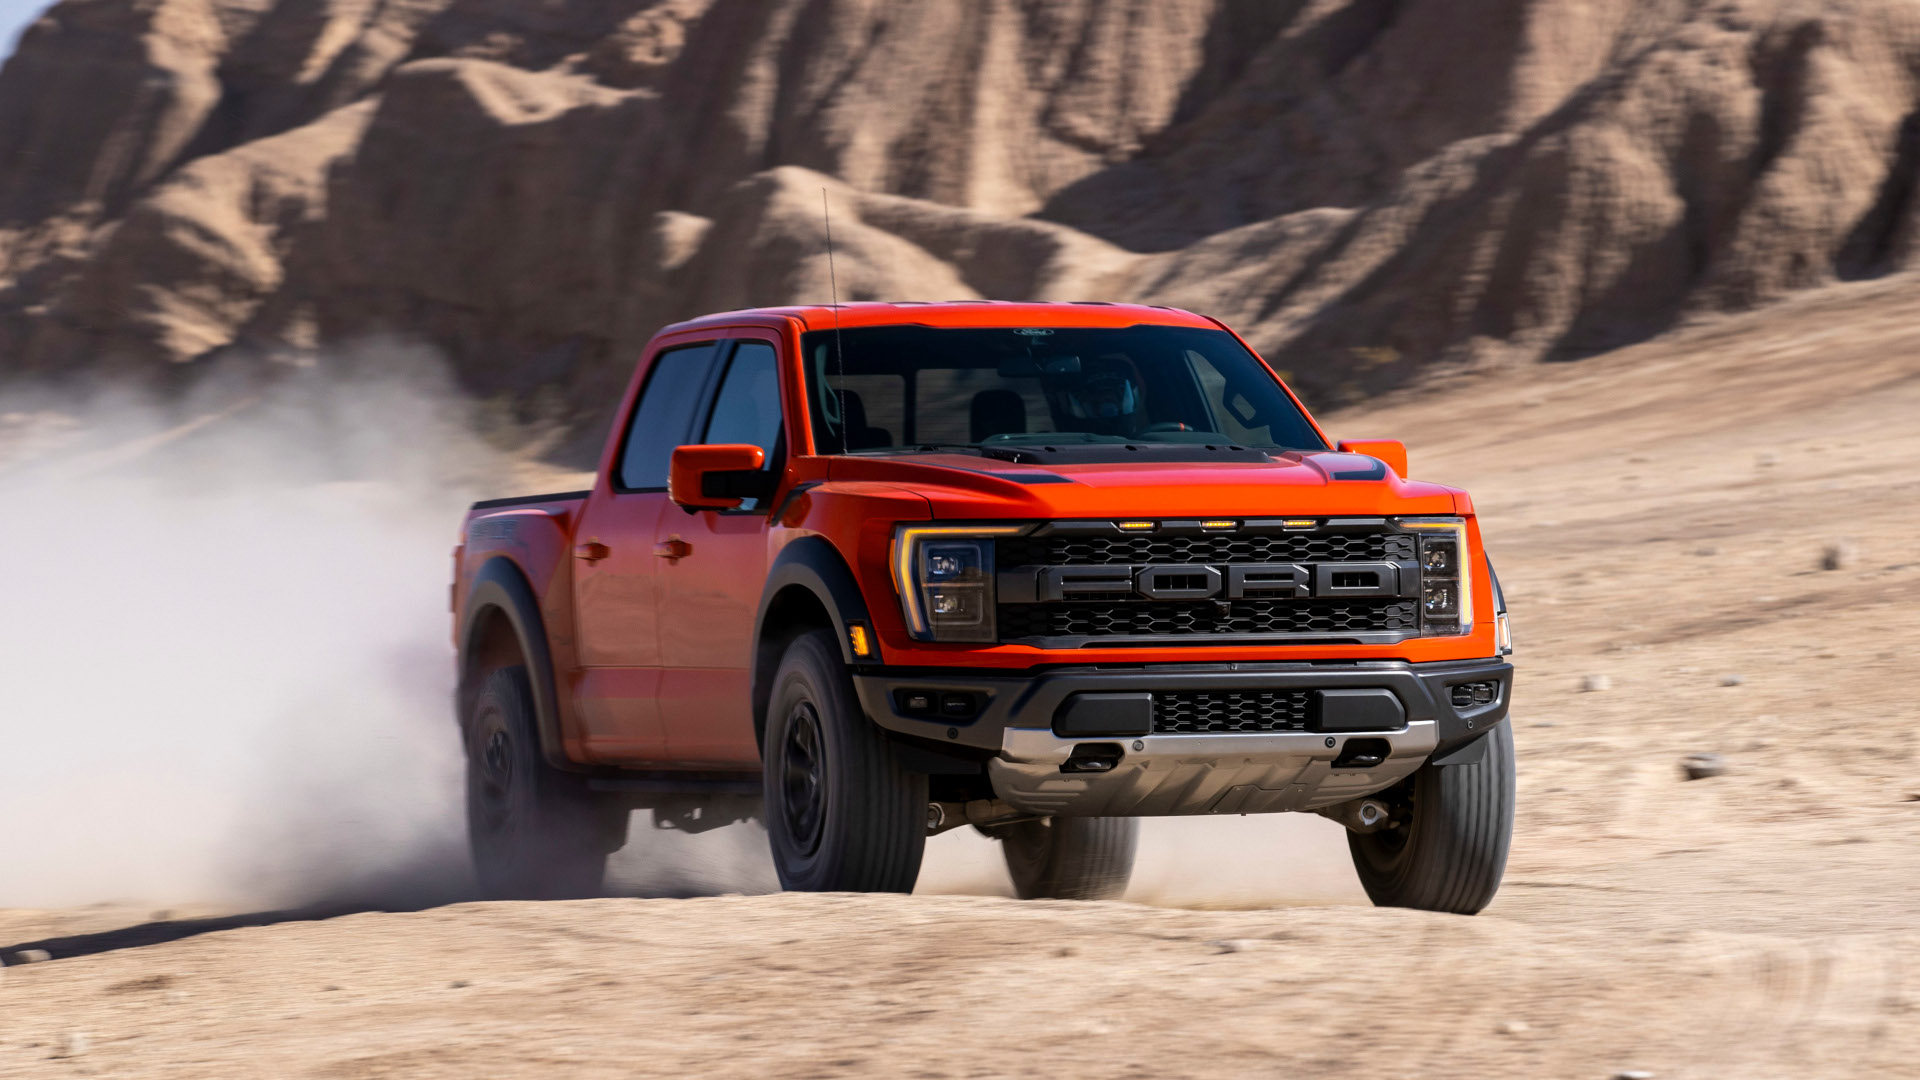 The Ford F-150 Raptor - Front View Off Road